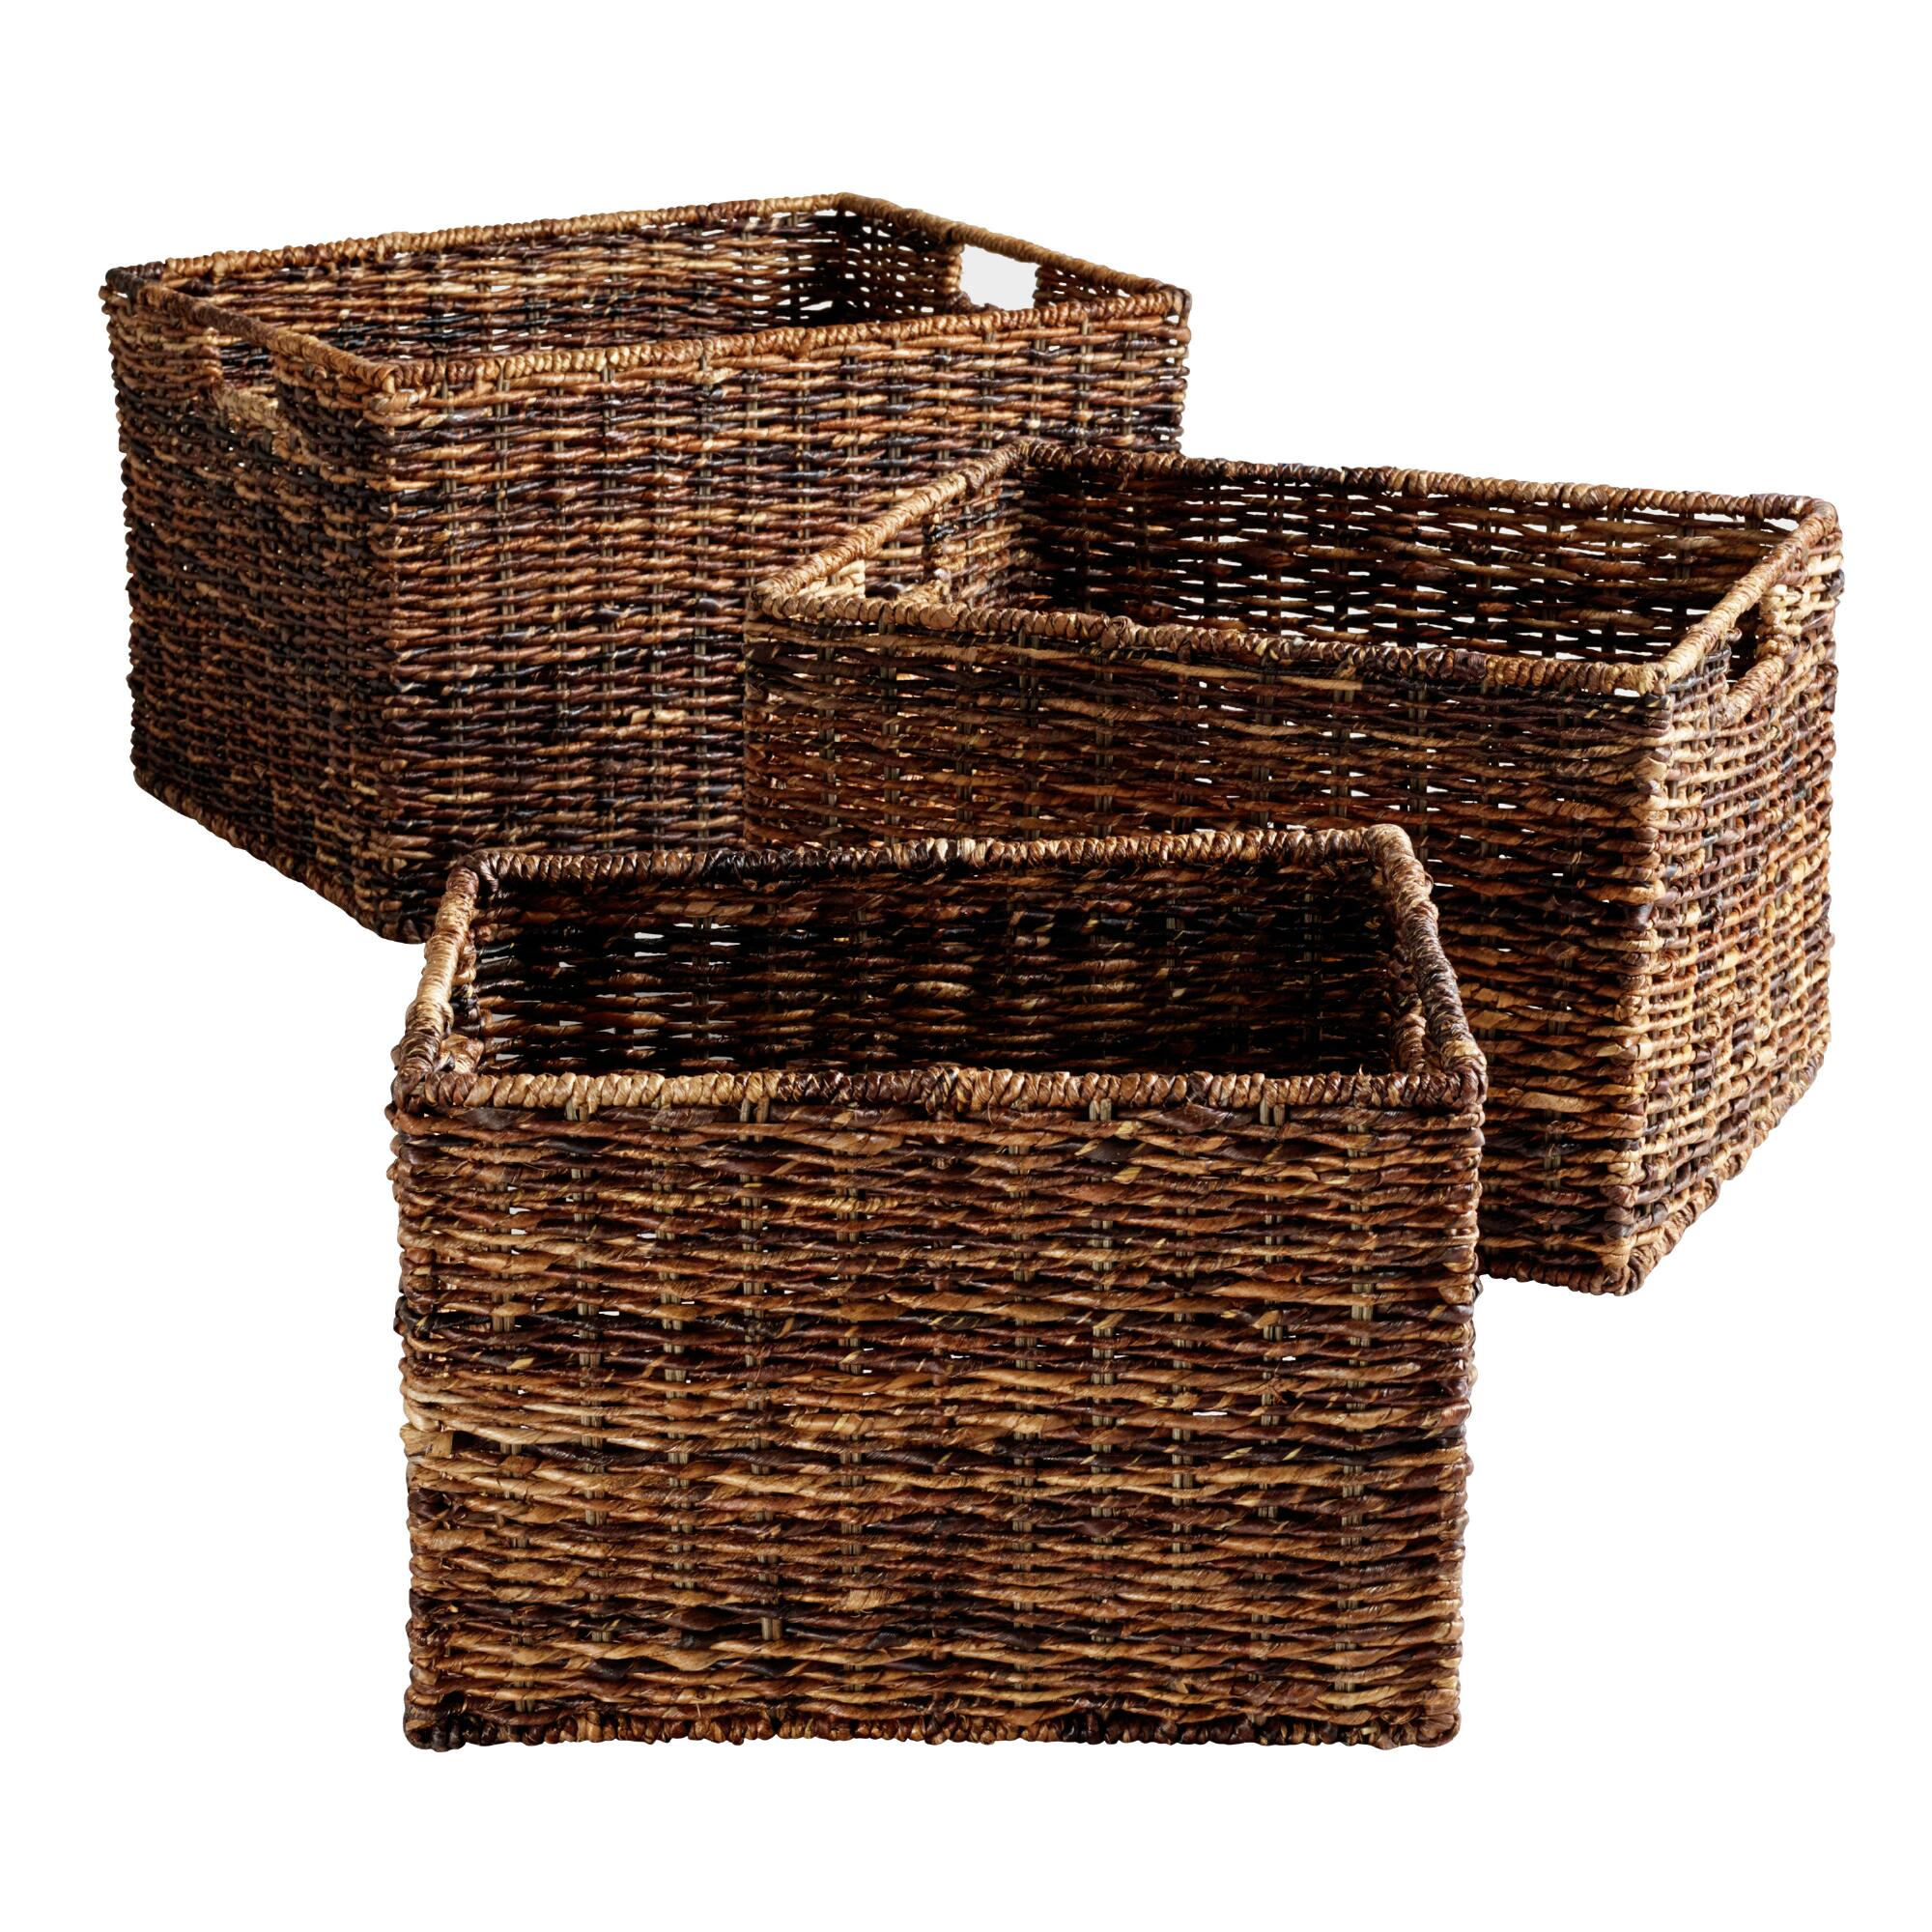 Madras Rectangular Baskets: Brown - Natural Fiber - Medium by World Market Medium